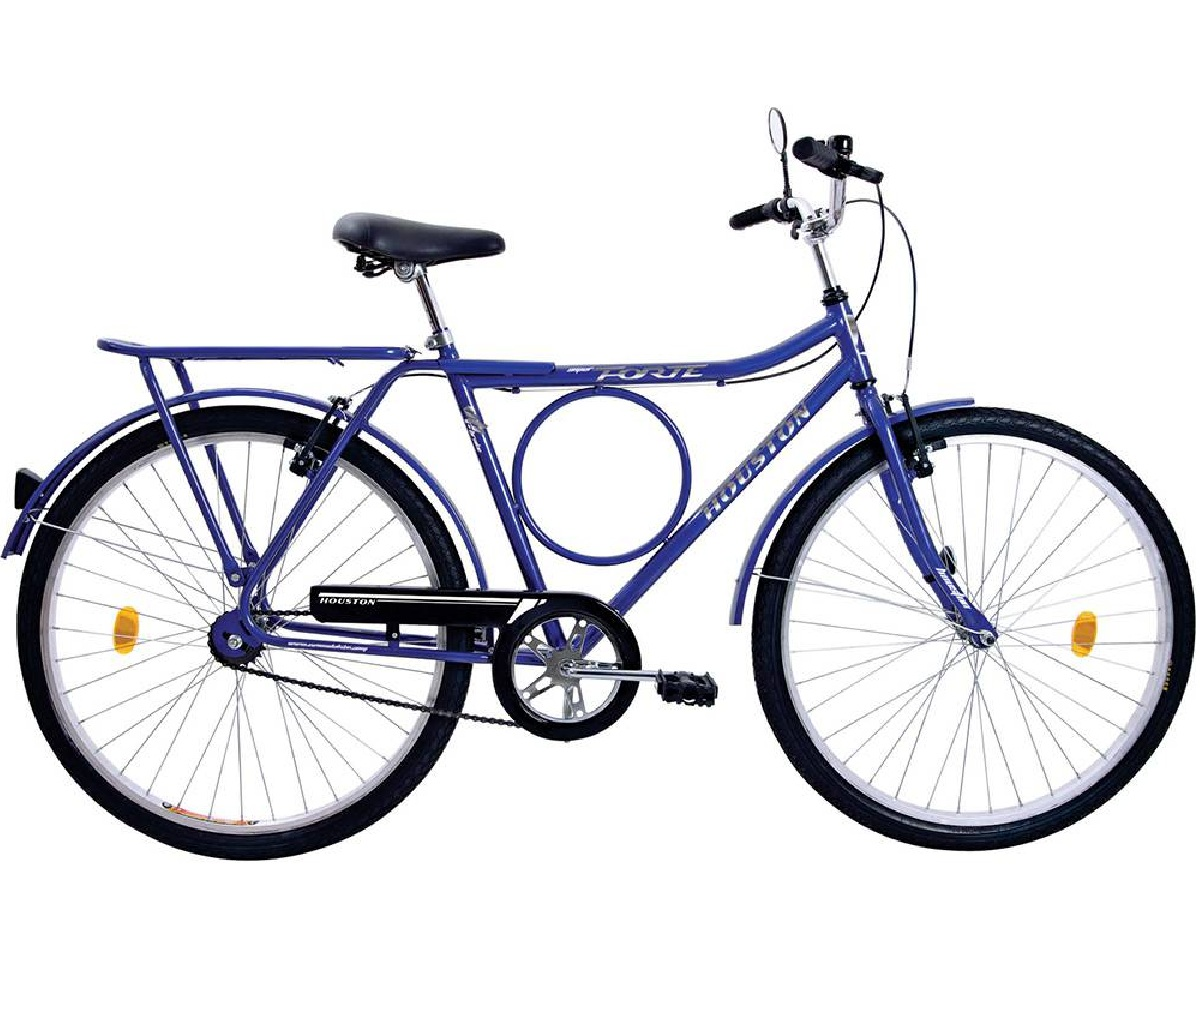 Bicicleta Super Forte VB Aro 26 Azul Copa - Houston